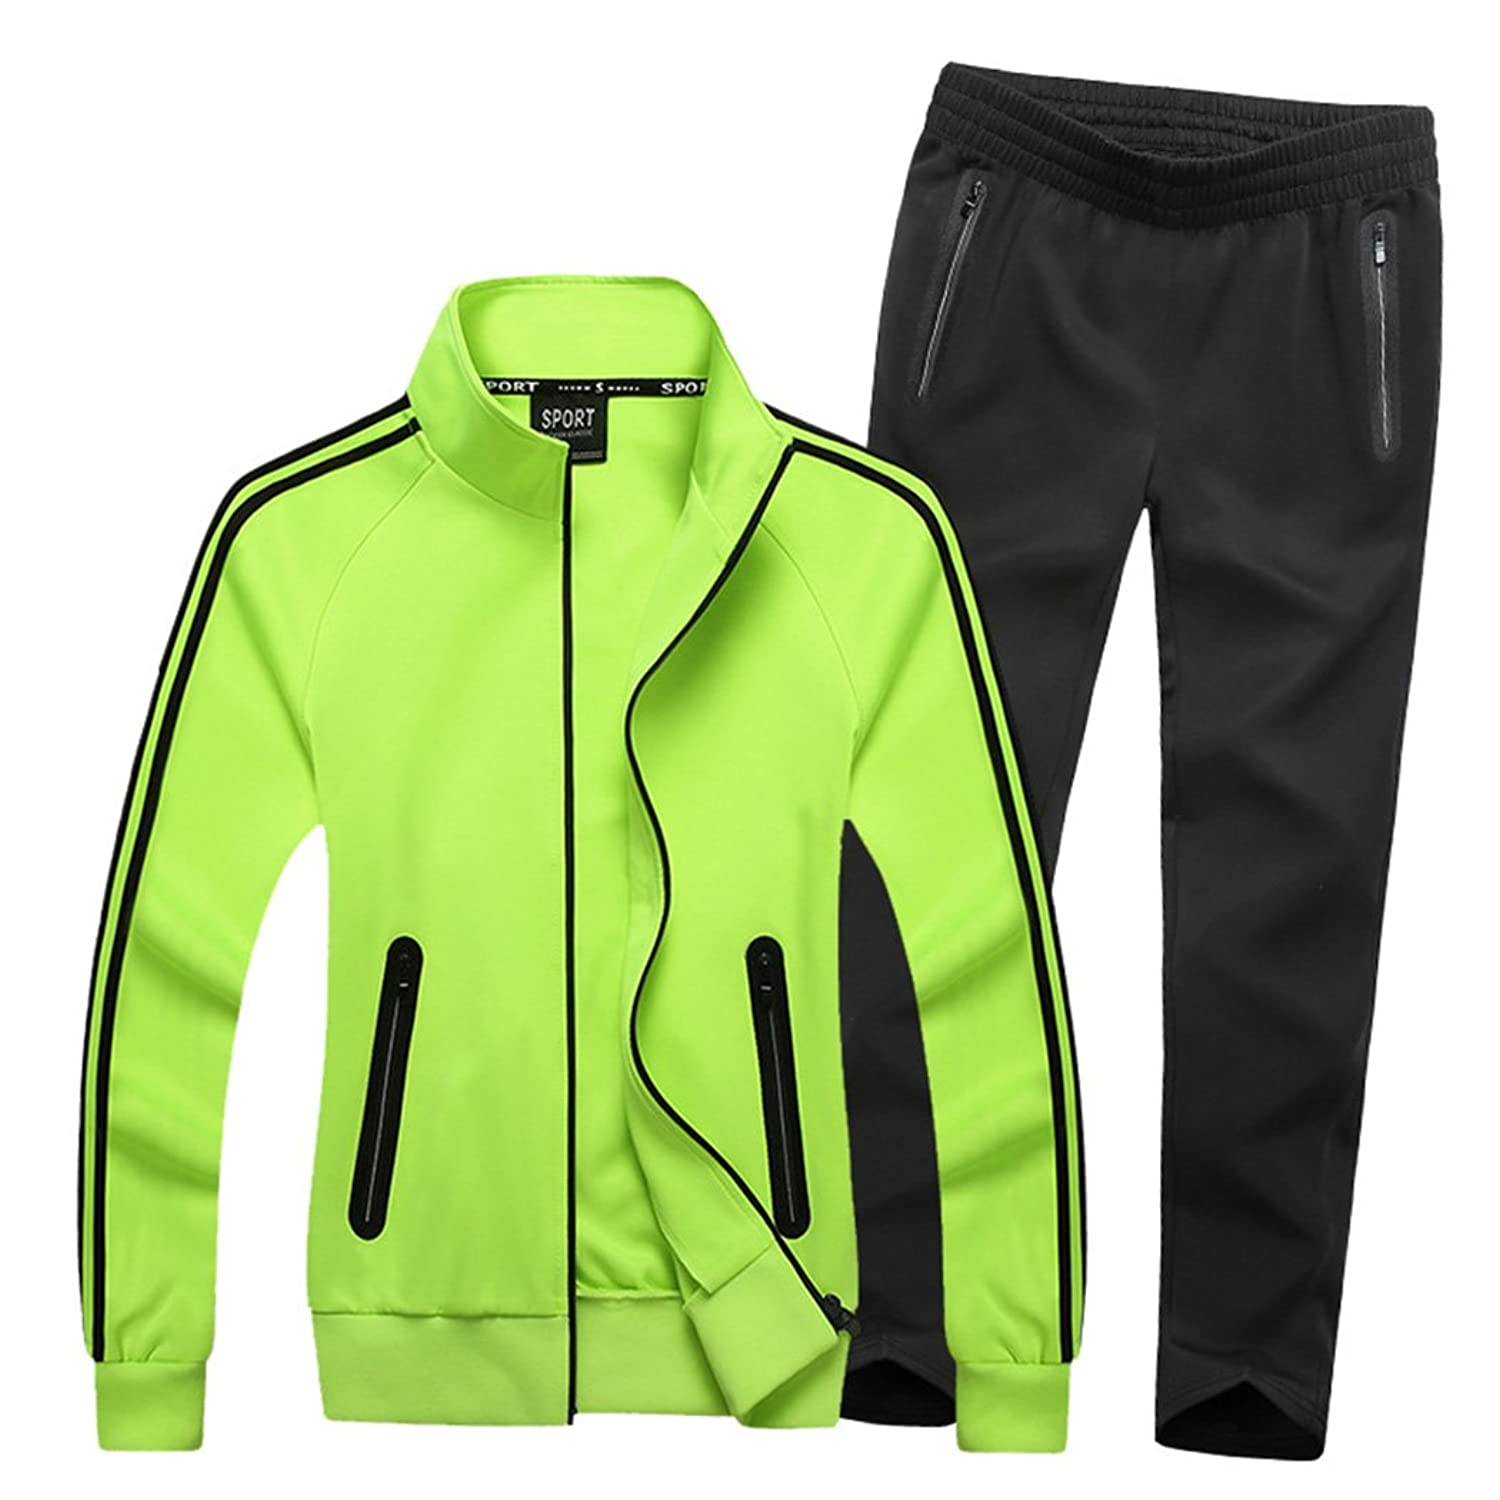 Running Sets Popular Brand Sport Suits Women Jacket Pants Yoga Suits Tracksuit Running Jogging Sauna Top Pants Sweat Boost Plus Size Sport Suits Women New Varieties Are Introduced One After Another